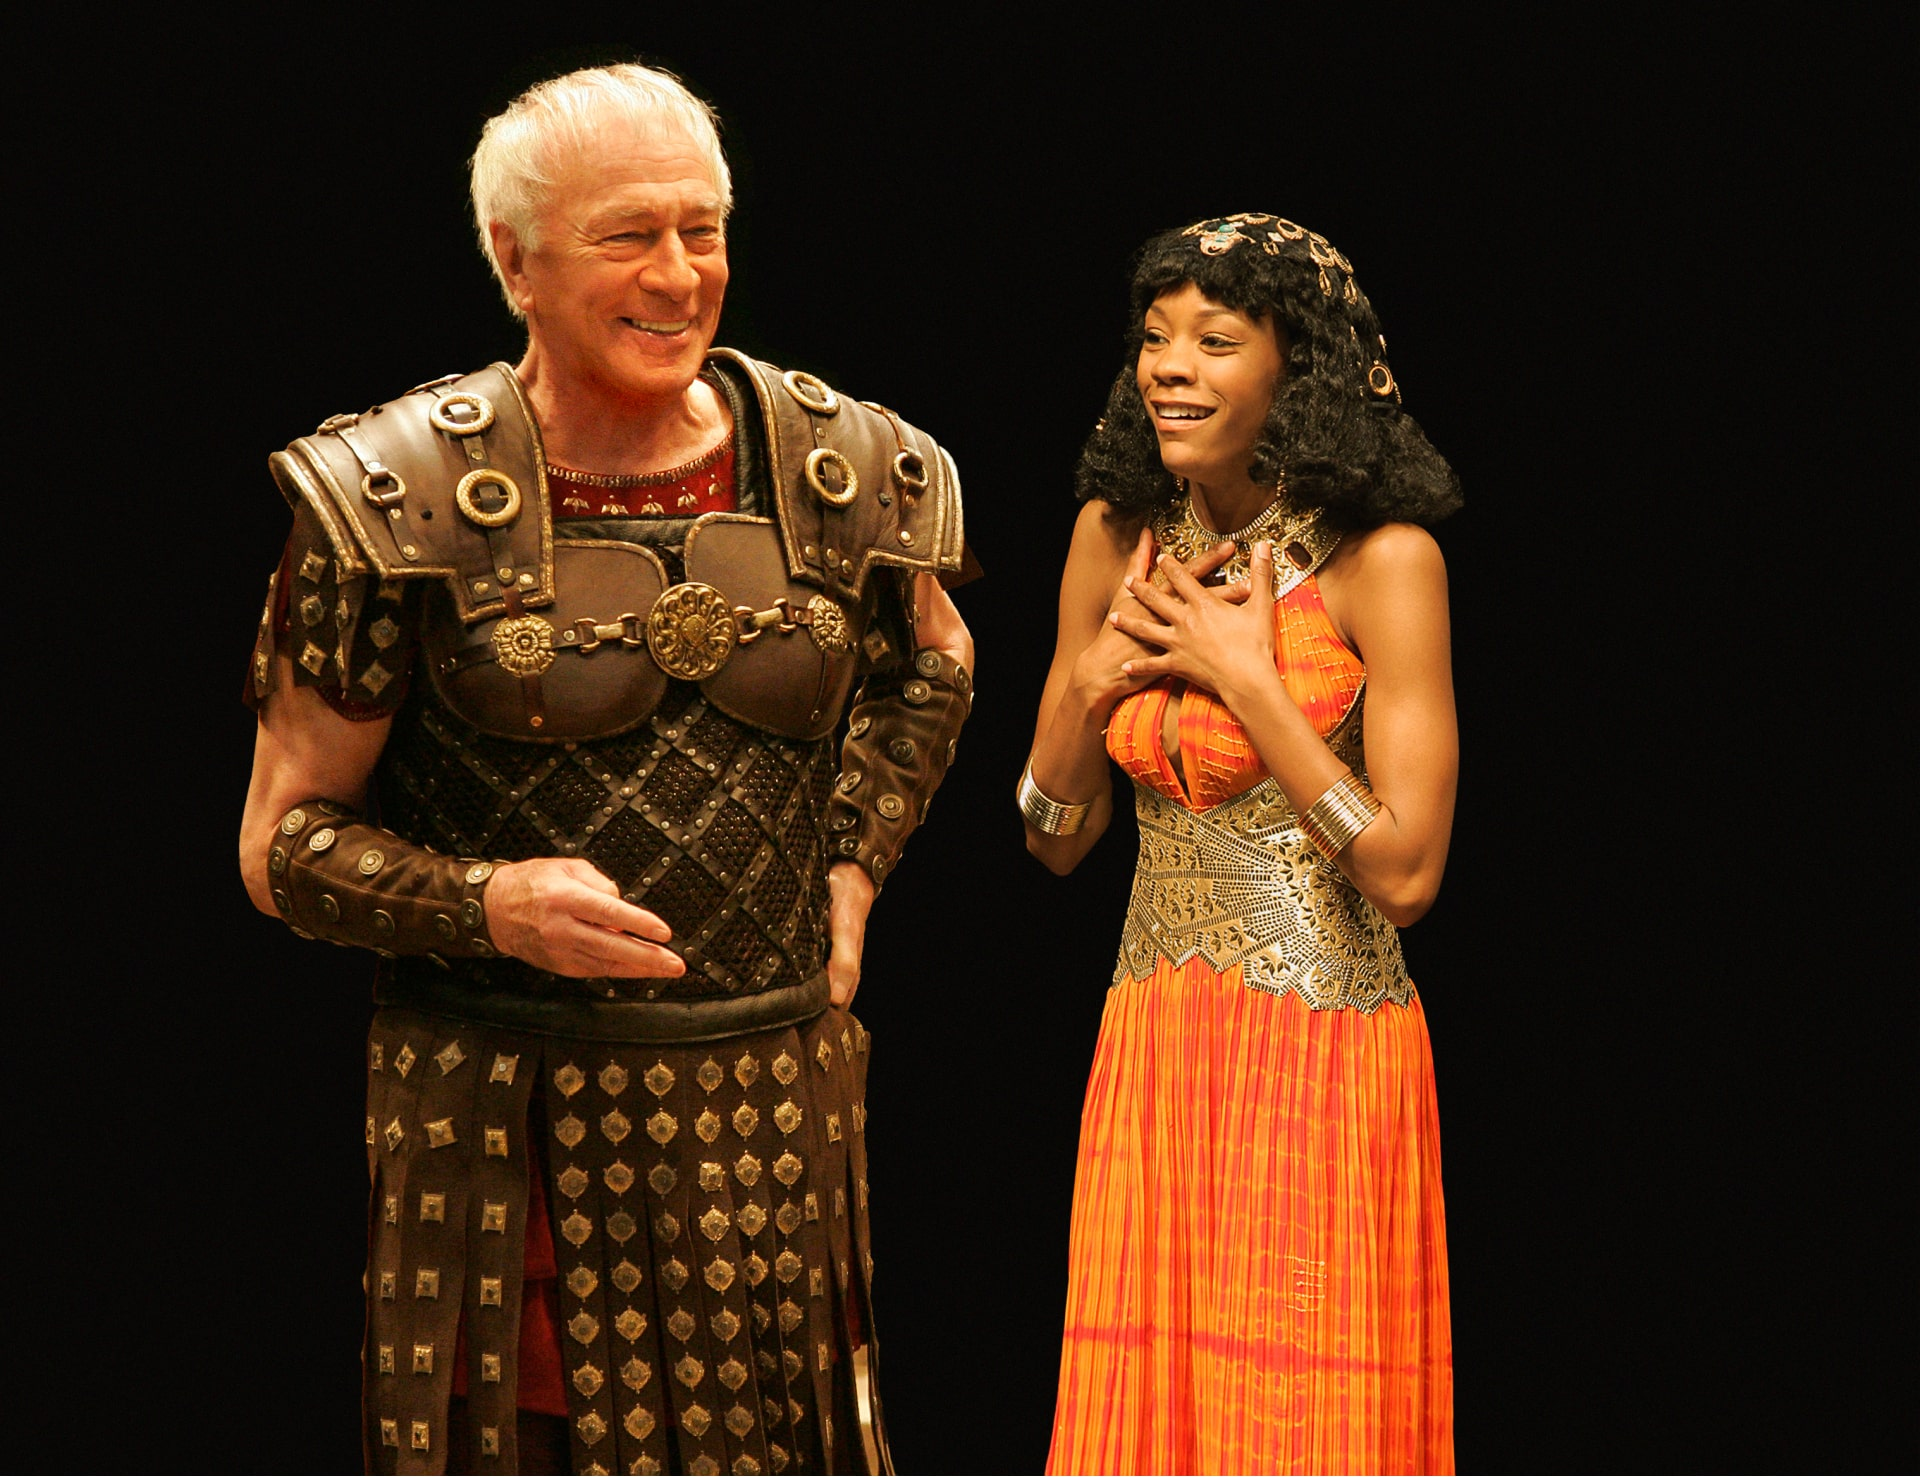 Roman leader and Egyptian queen laugh in warm light.